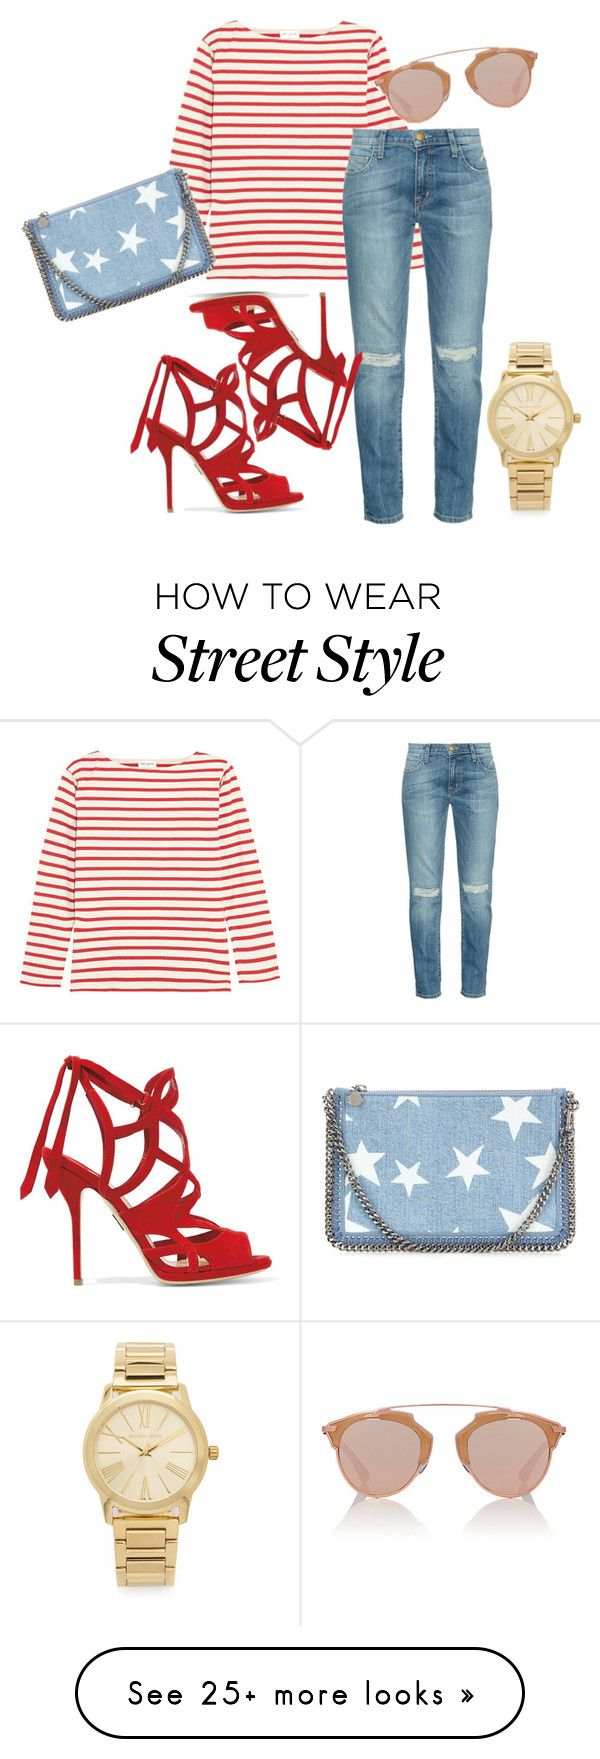 """street style"" by maite15 on Polyvore featuring Yves Saint Laurent, Current/Elliott, Paul Andrew, Christian Dior, Michael Kors and STELLA McCARTNEY"